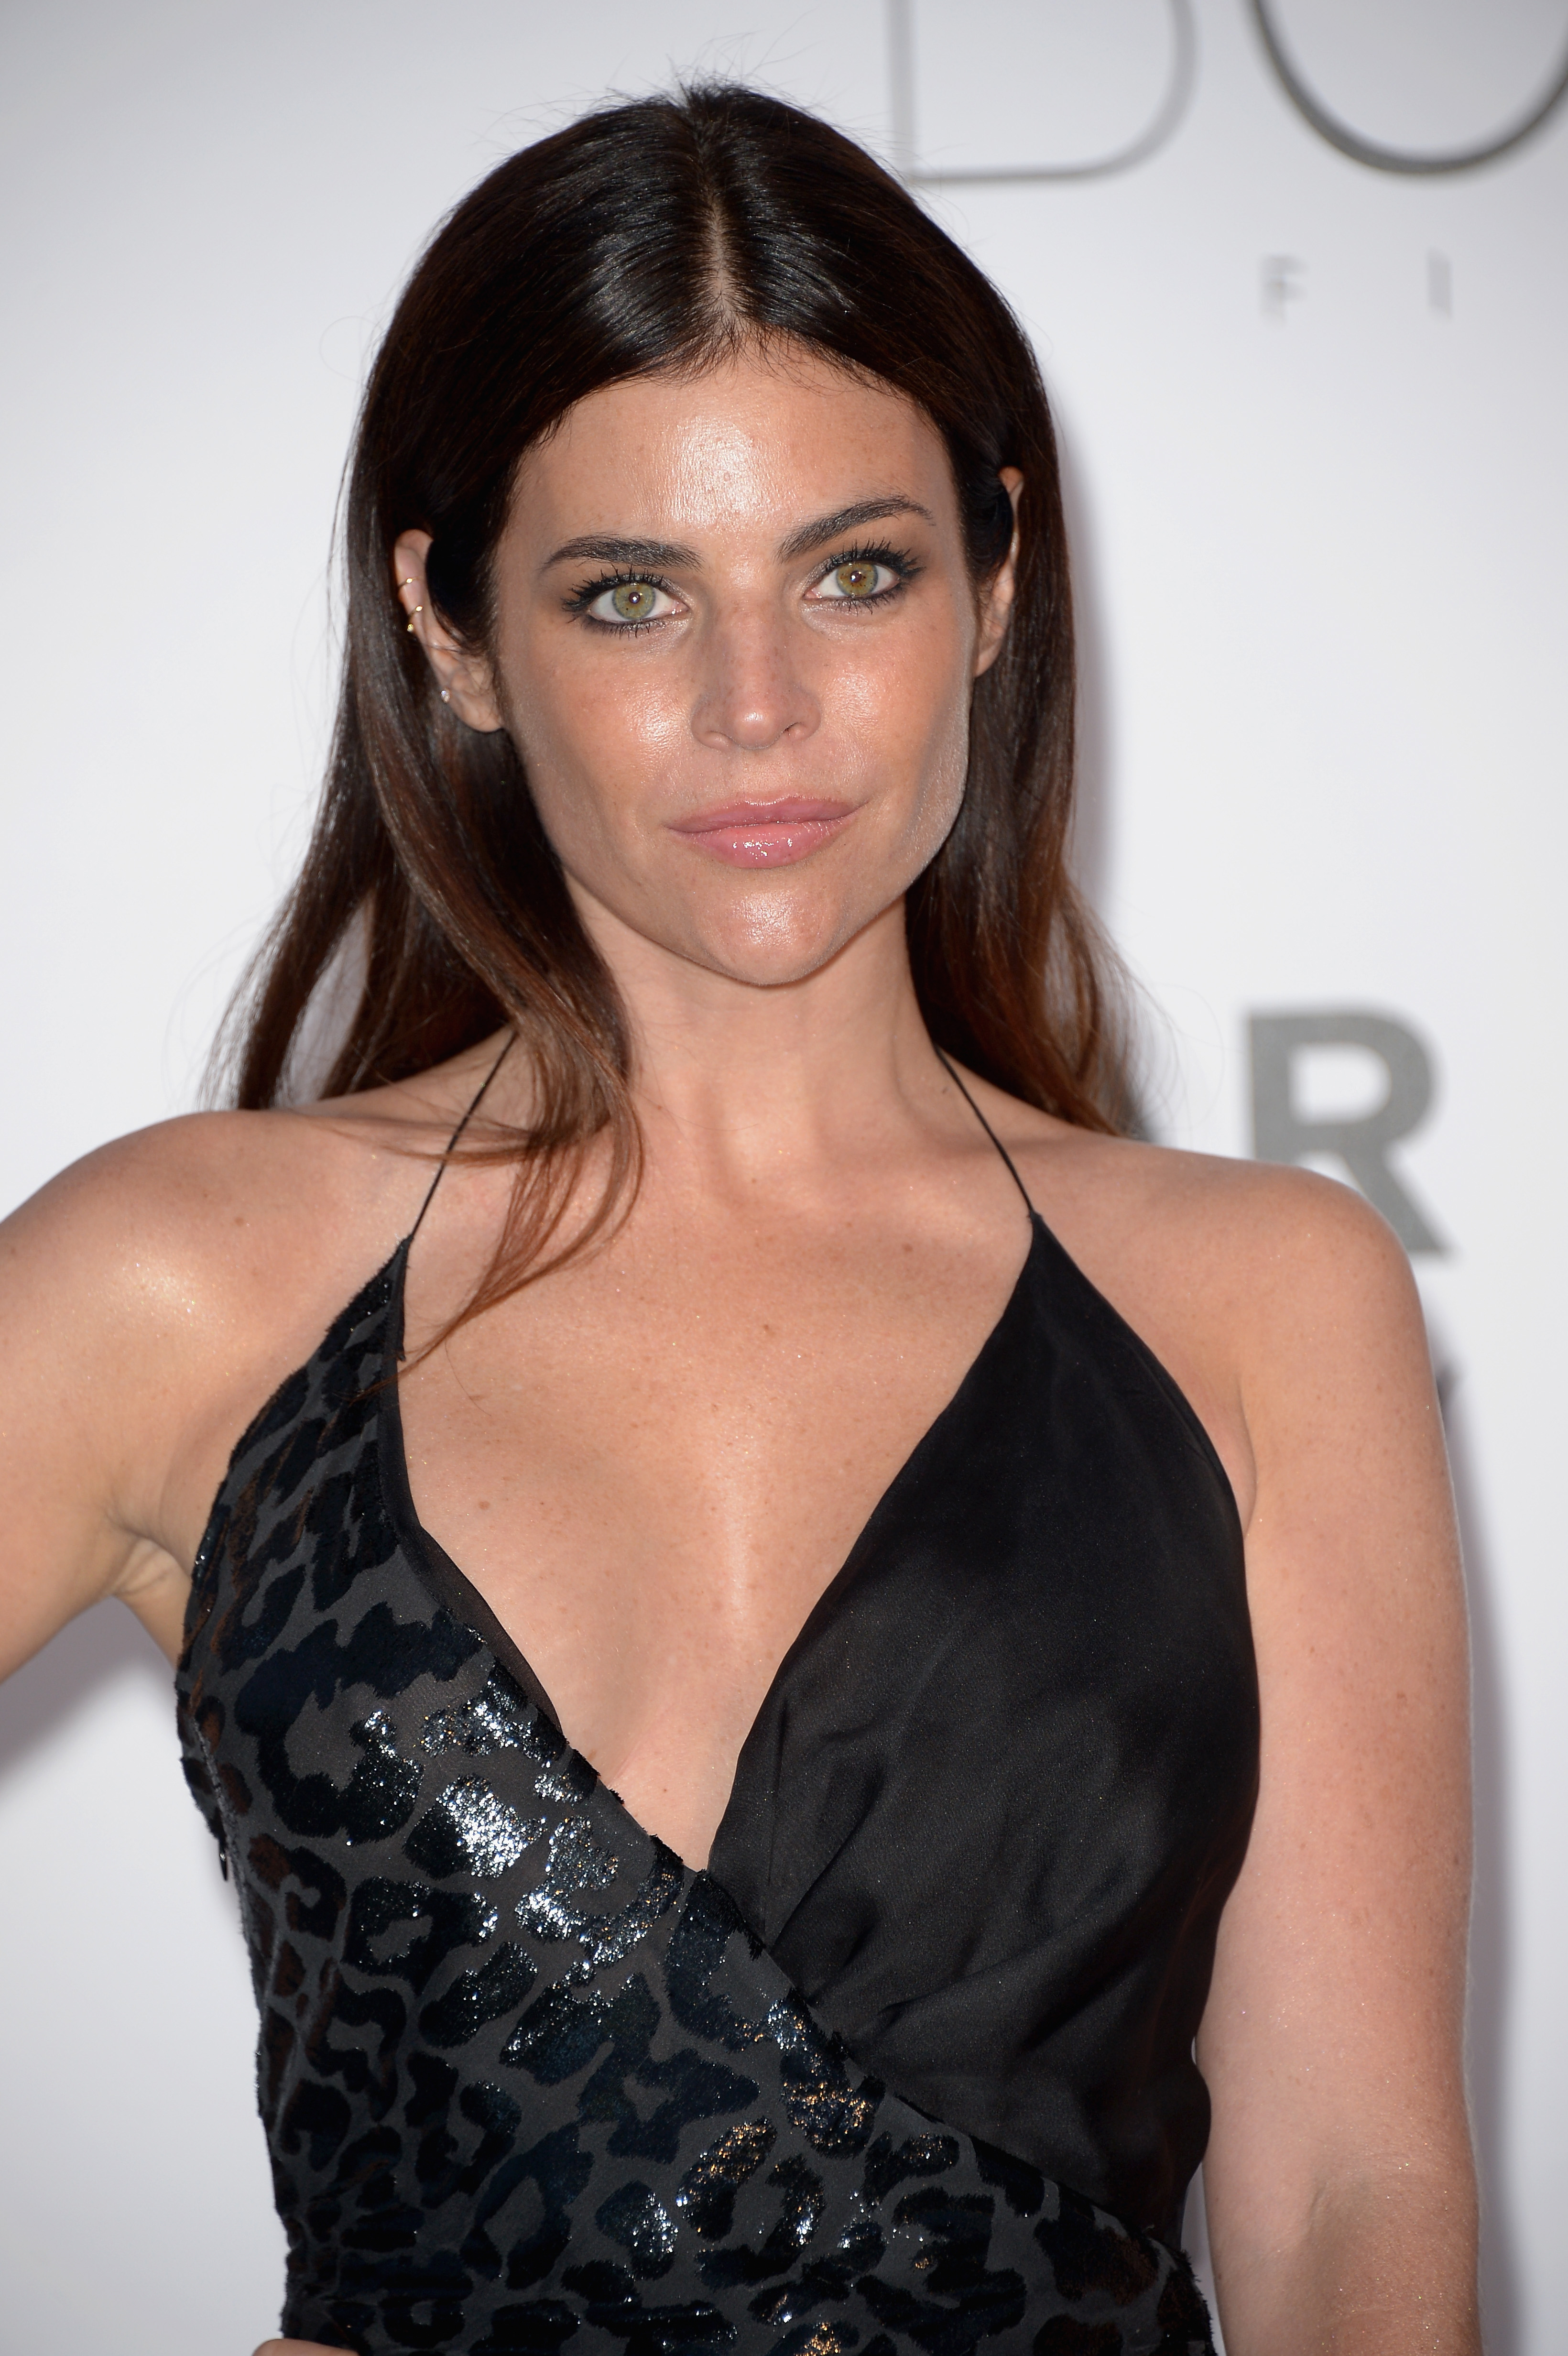 CAP D'ANTIBES, FRANCE - MAY 19:  Model Julia Restoin-Roitfeld attends the amfAR's 23rd Cinema Against AIDS Gala at Hotel du Cap-Eden-Roc on May 19, 2016 in Cap d'Antibes, France.  (Photo by Dominique Charriau/WireImage)